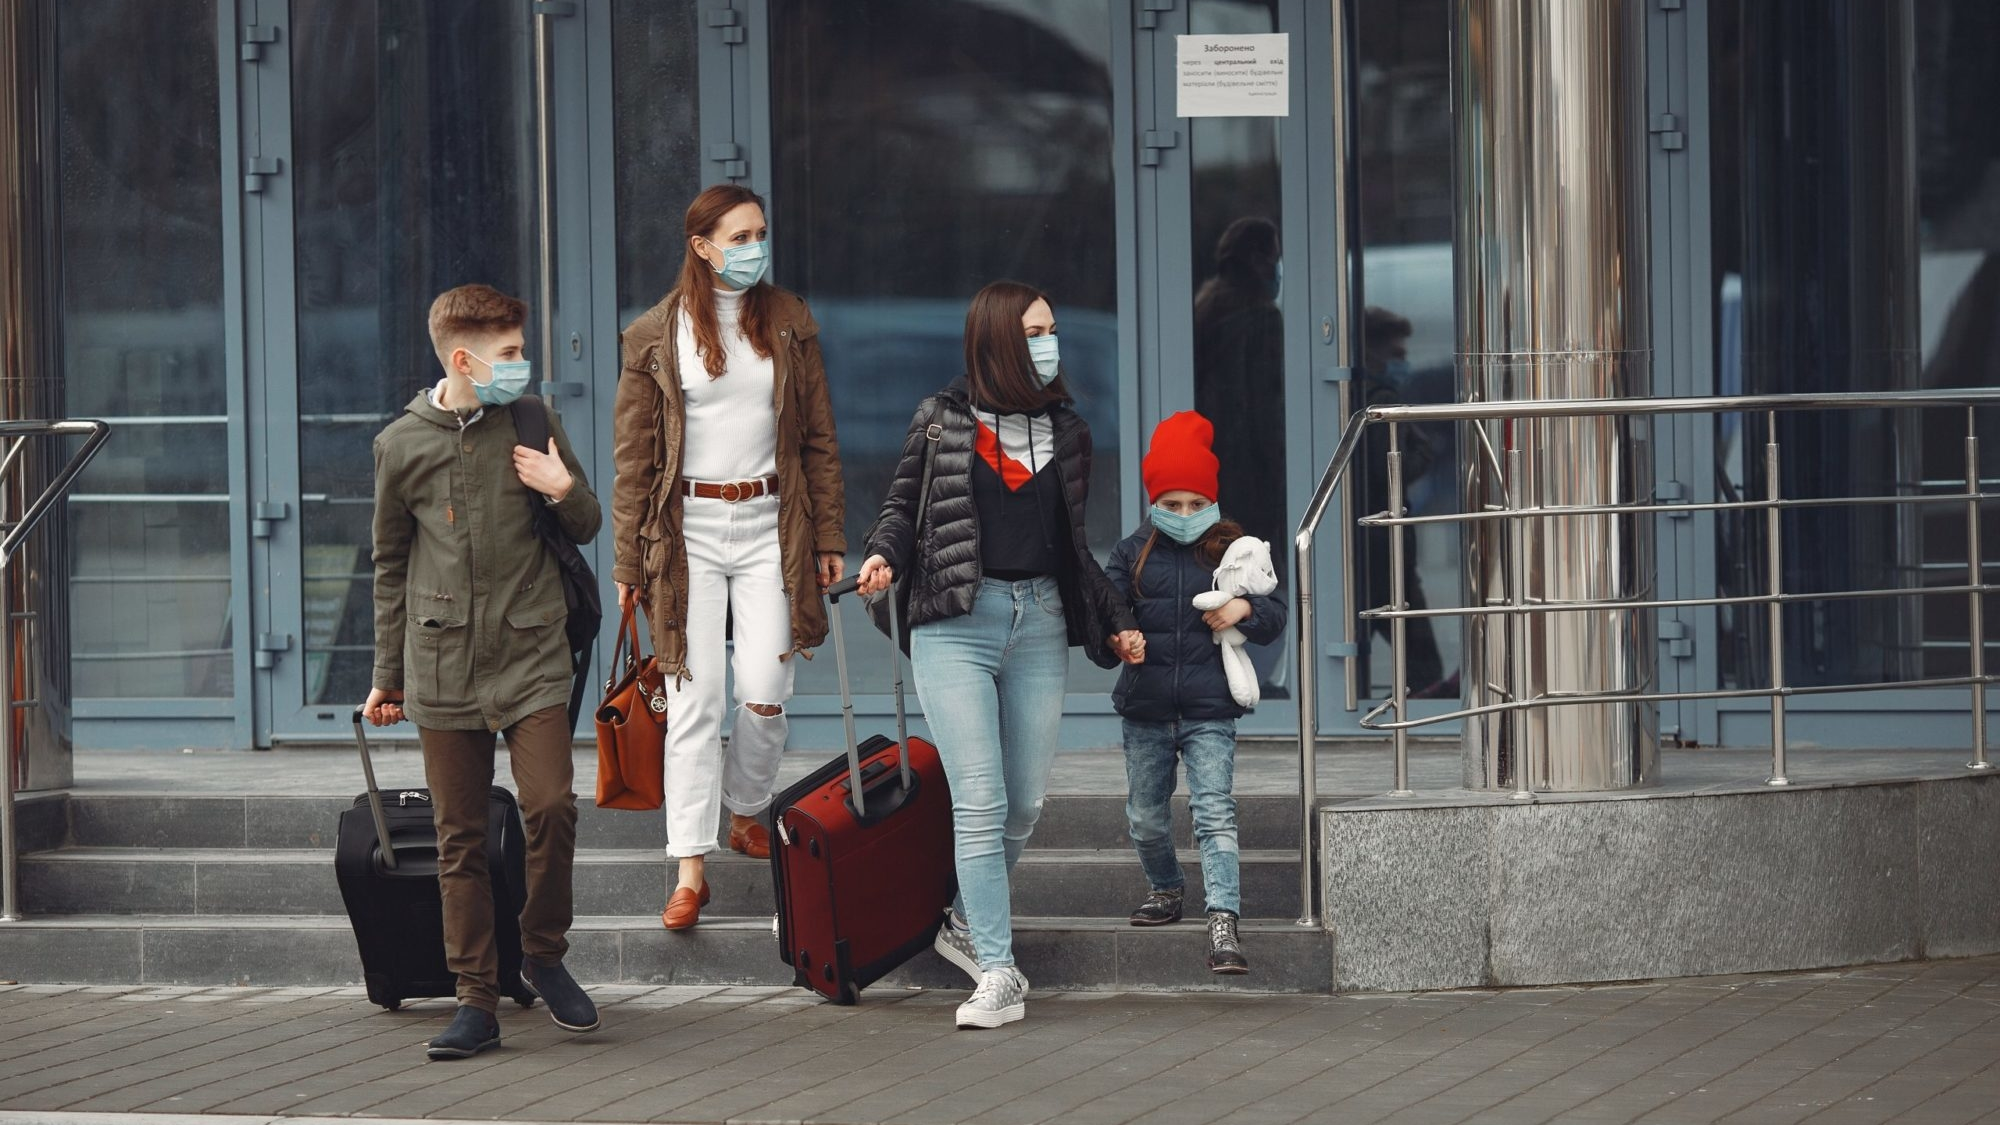 Travelers leaving airport are wearing protective masks.